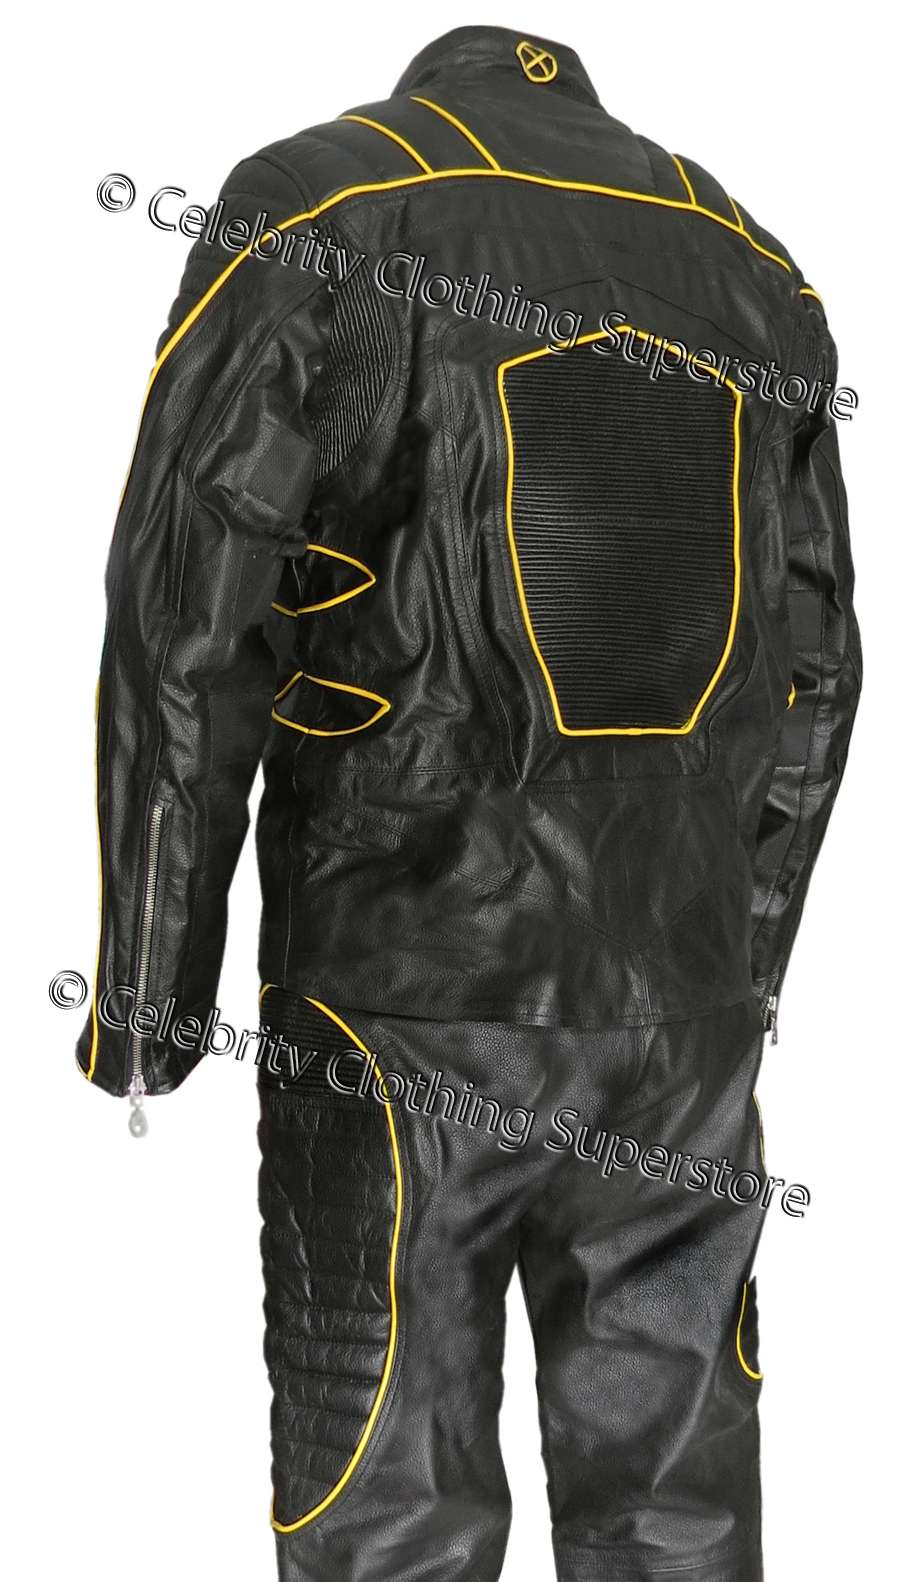 X-Men-2-Wolverine-Motorcycle-Leather-Suit-Outfit-Costume/X-Men-X2-Wolverine-Motorcycle-Leather-Costume.jpg